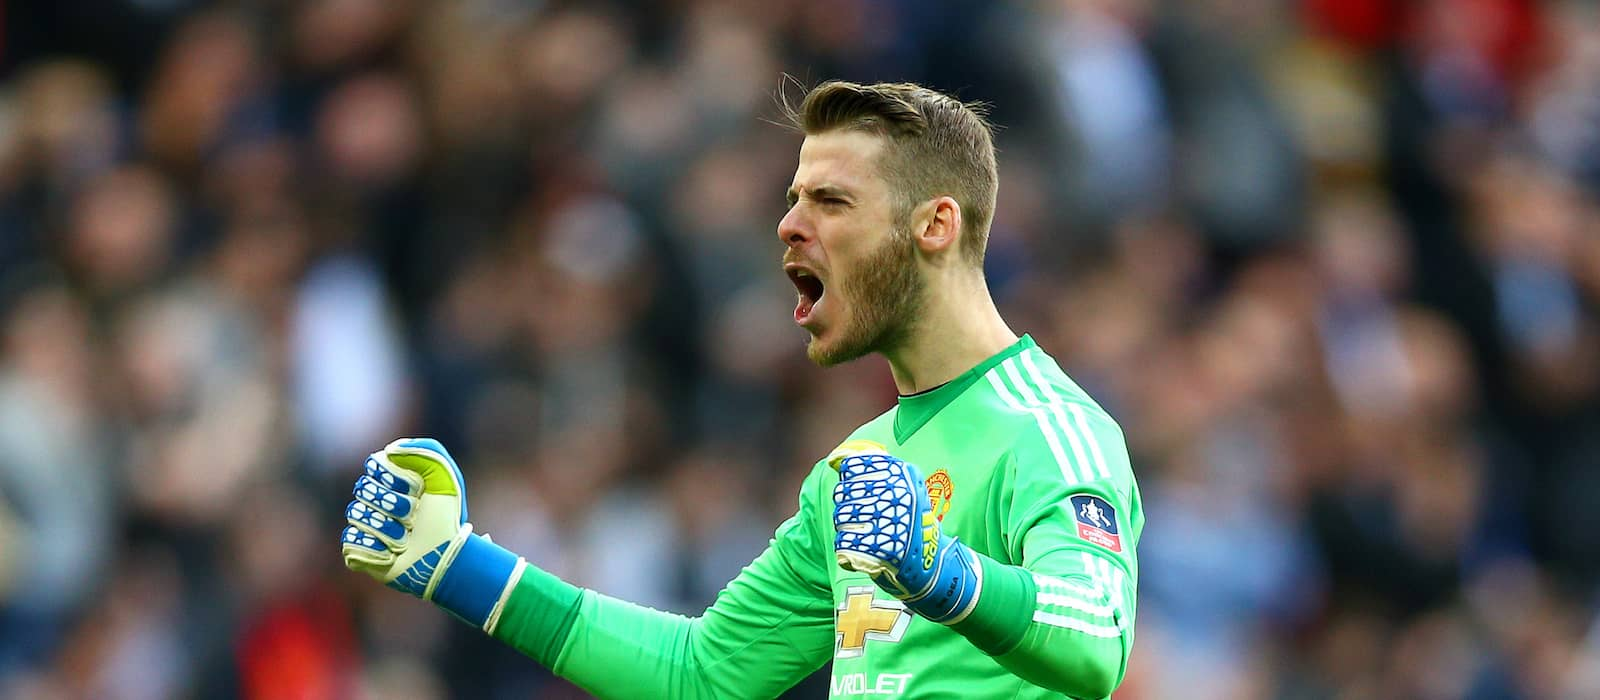 Michael Carrick: David de Gea was sensational against Everton